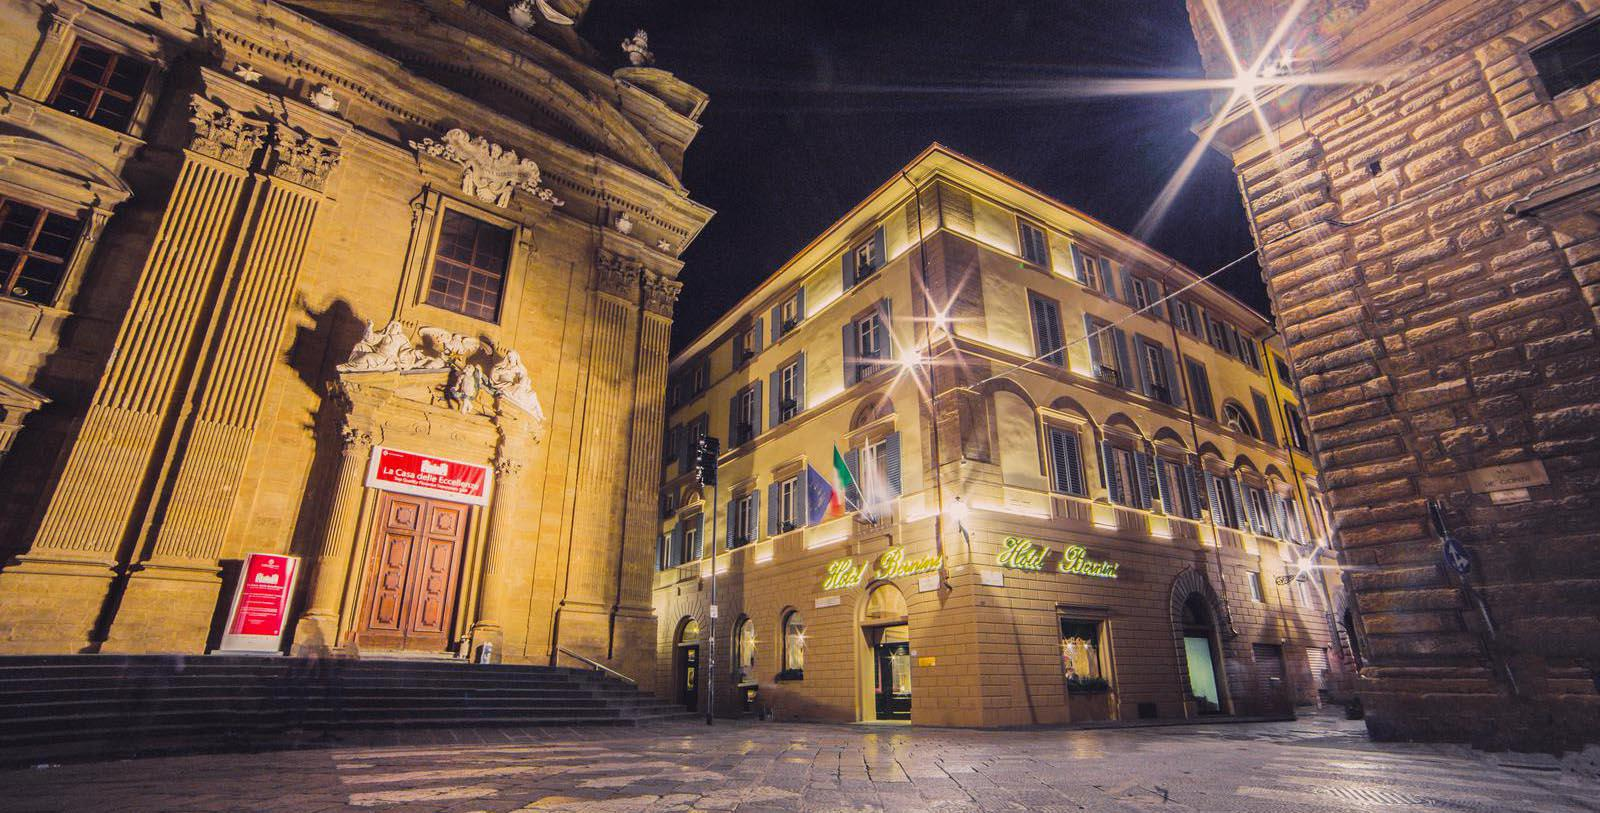 Image of hotel exterior Bernini Palace Hotel, 1500, Member of Historic Hotels Worldwide, in Florence, Italy, Overview